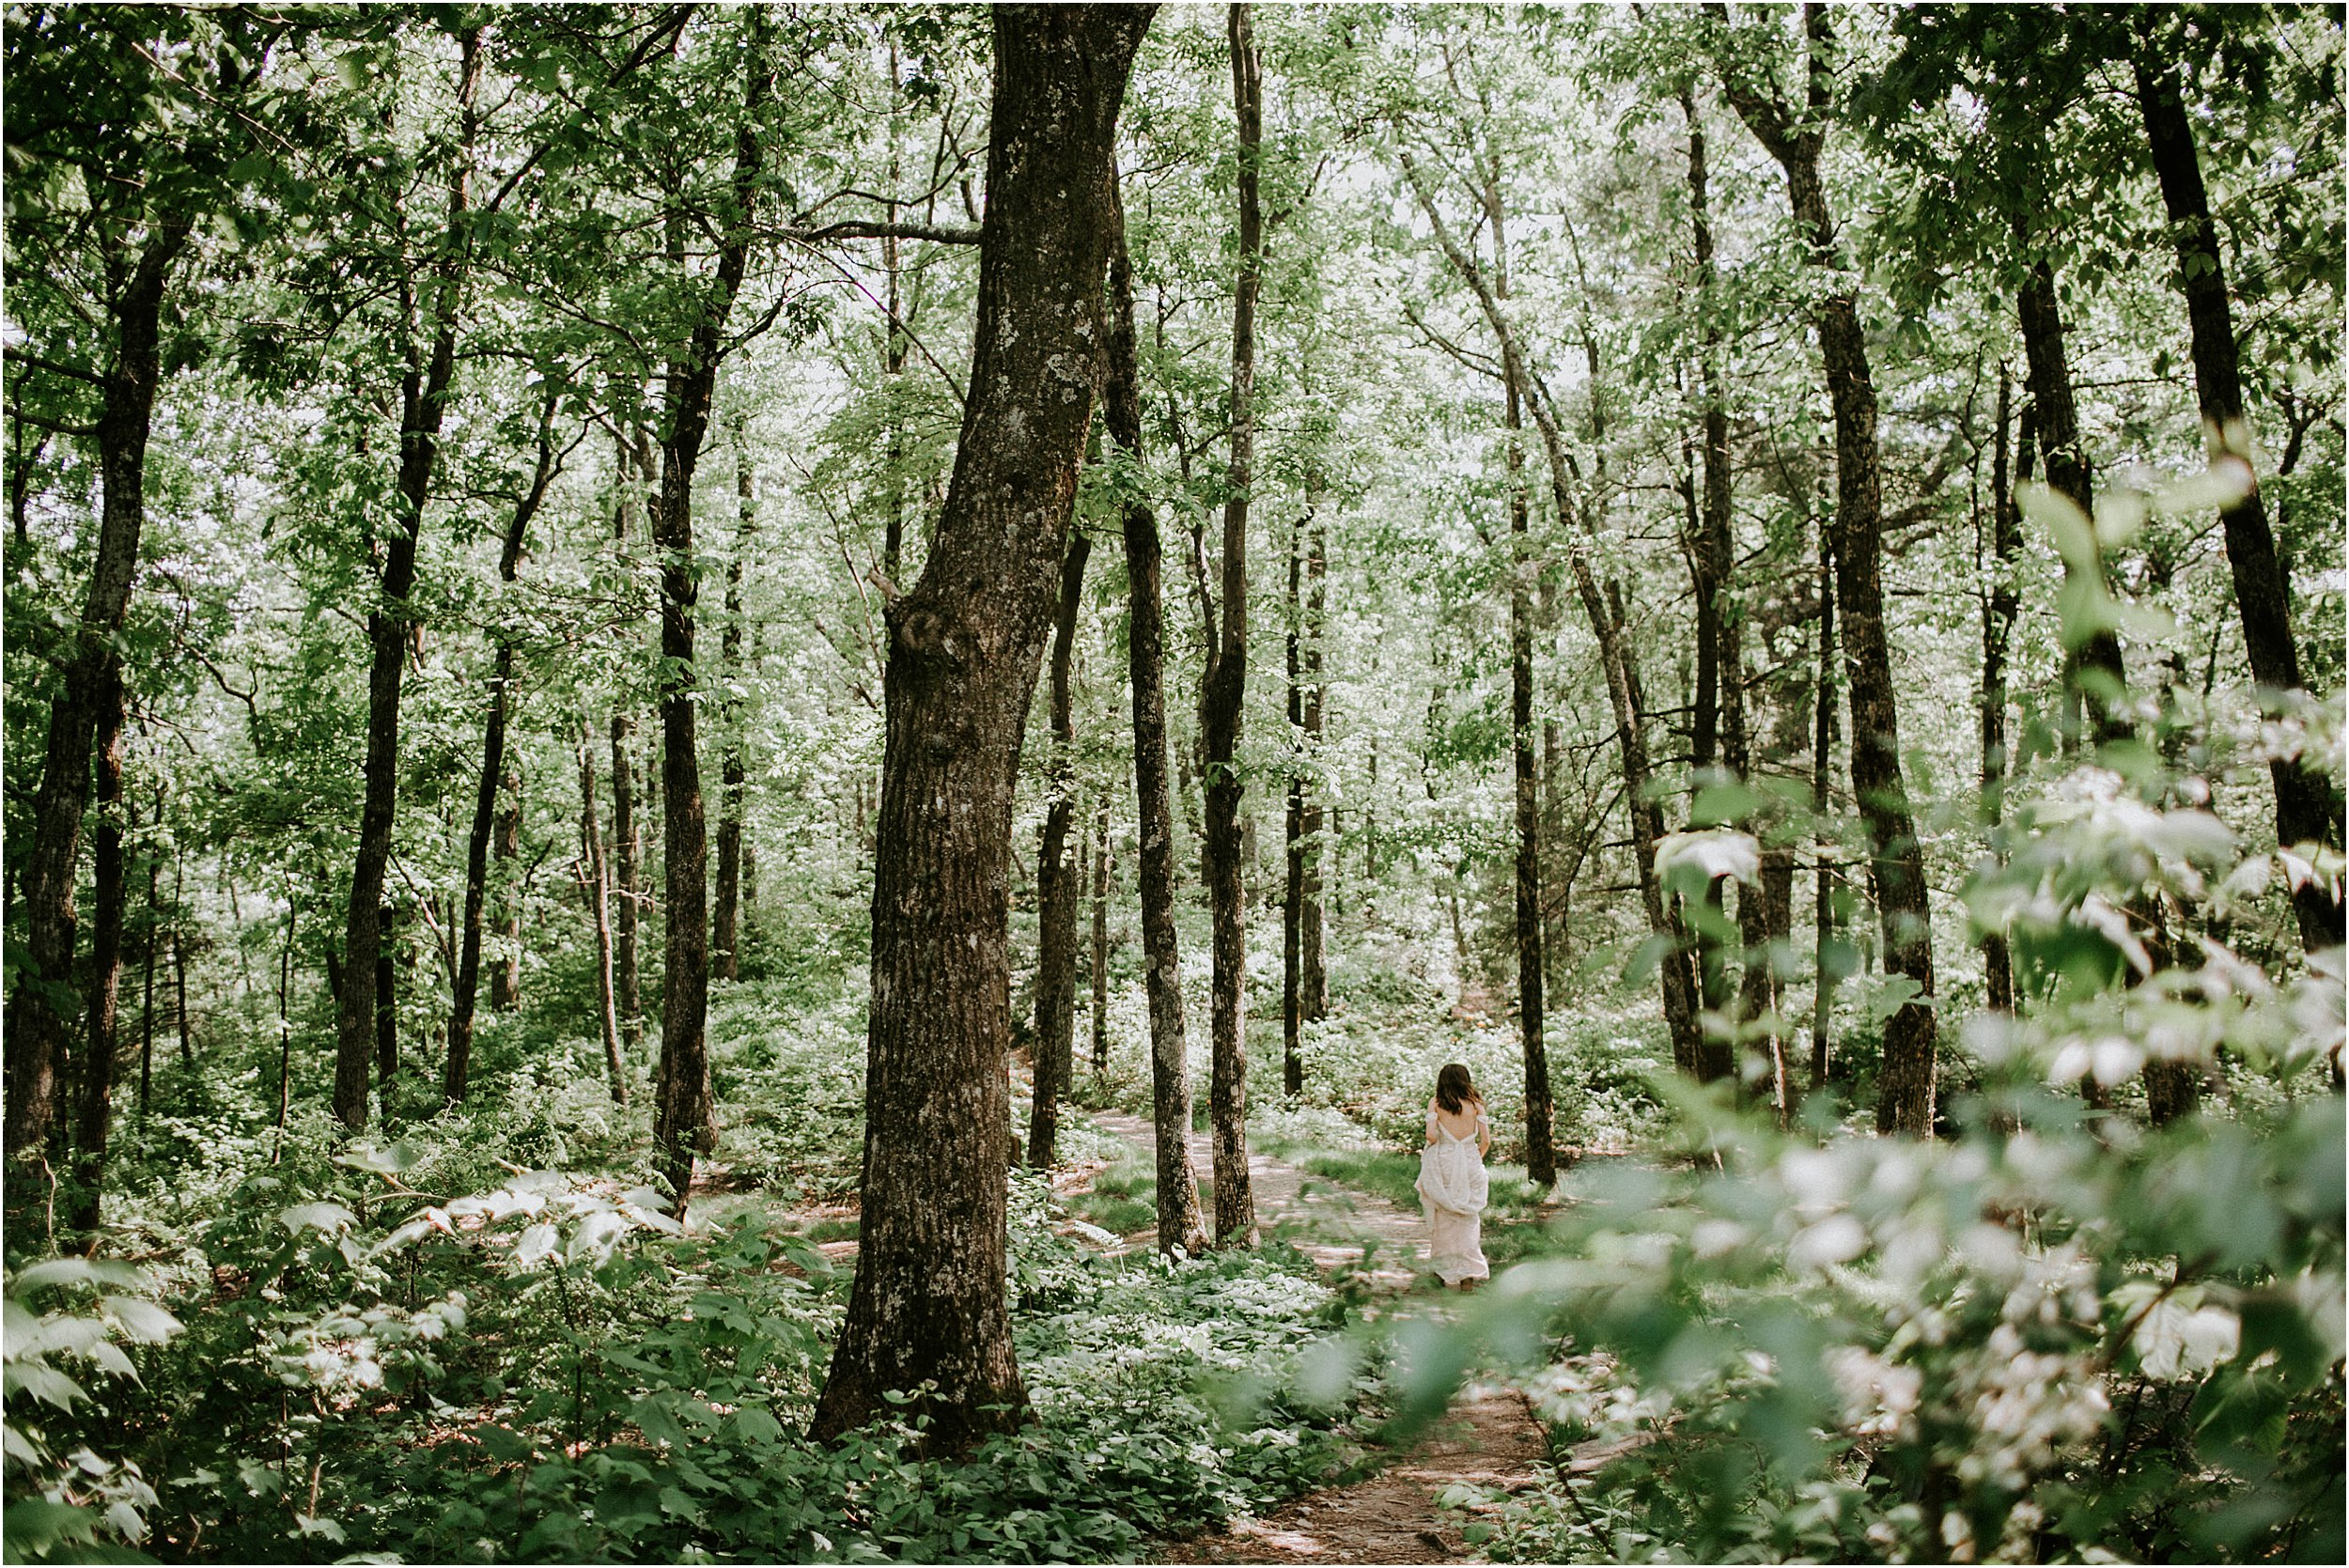 A woman in a wedding dress walk through the woods. It is dense with green leaves and she is wandering down the path.